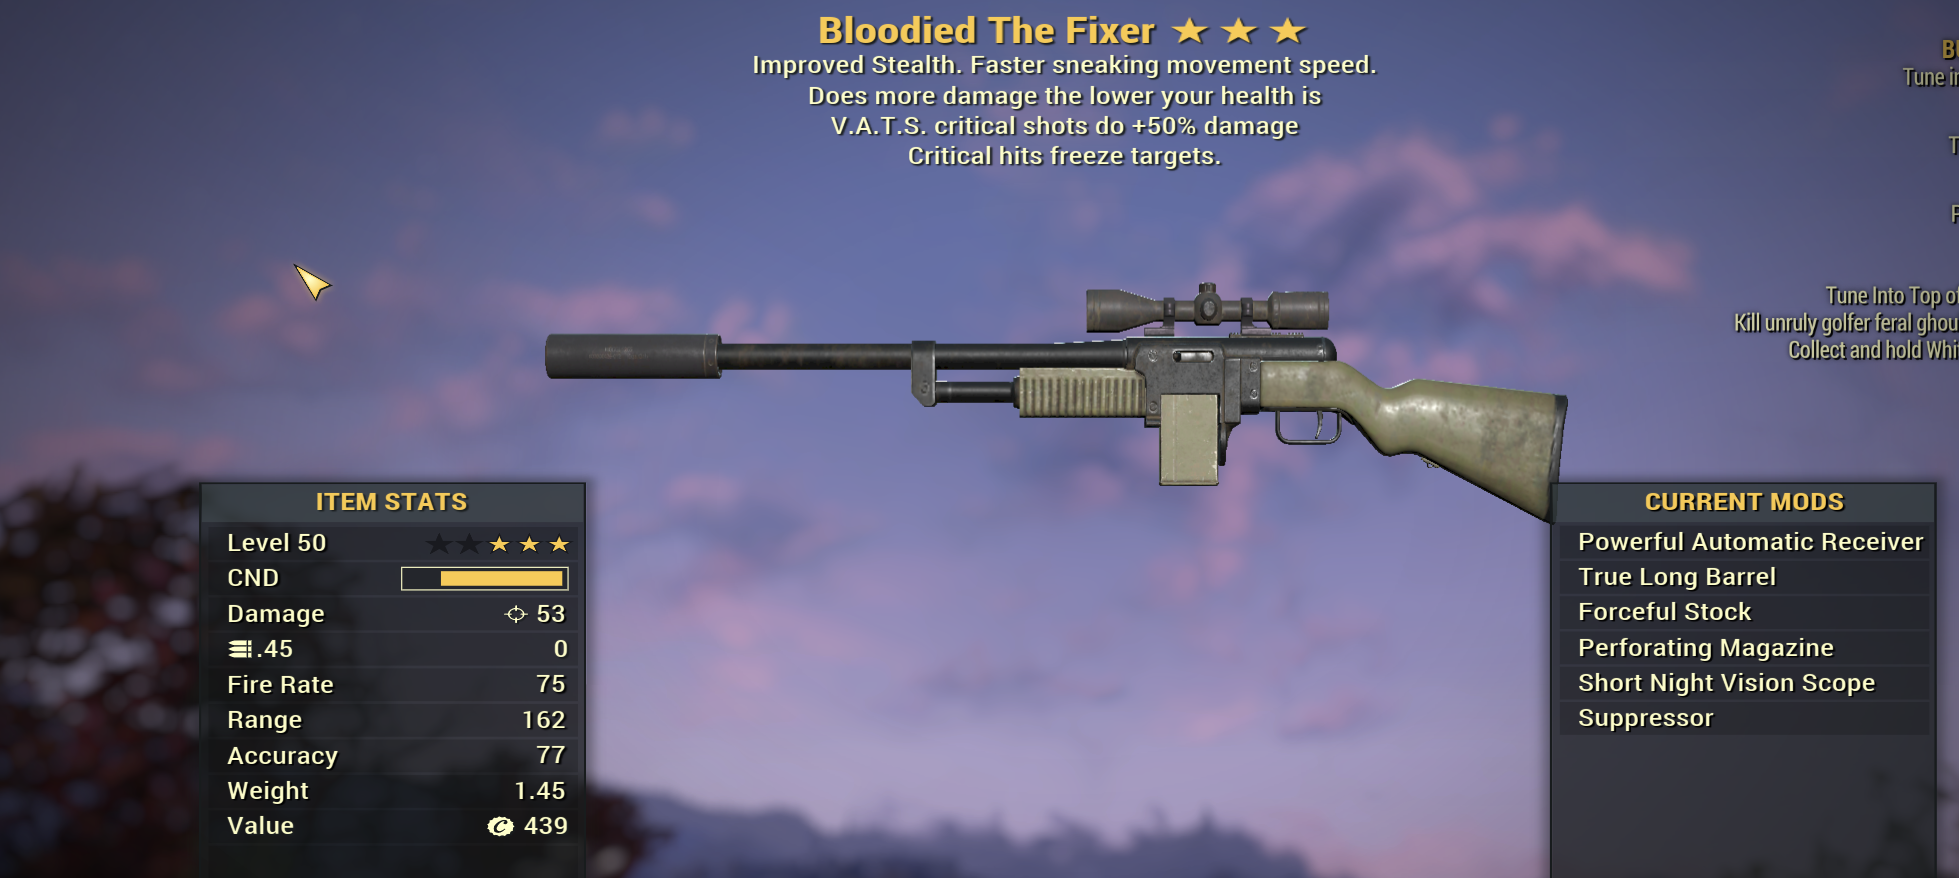 Bloodied 50% VATS critical shots  The Fixer [Freezing Crits]